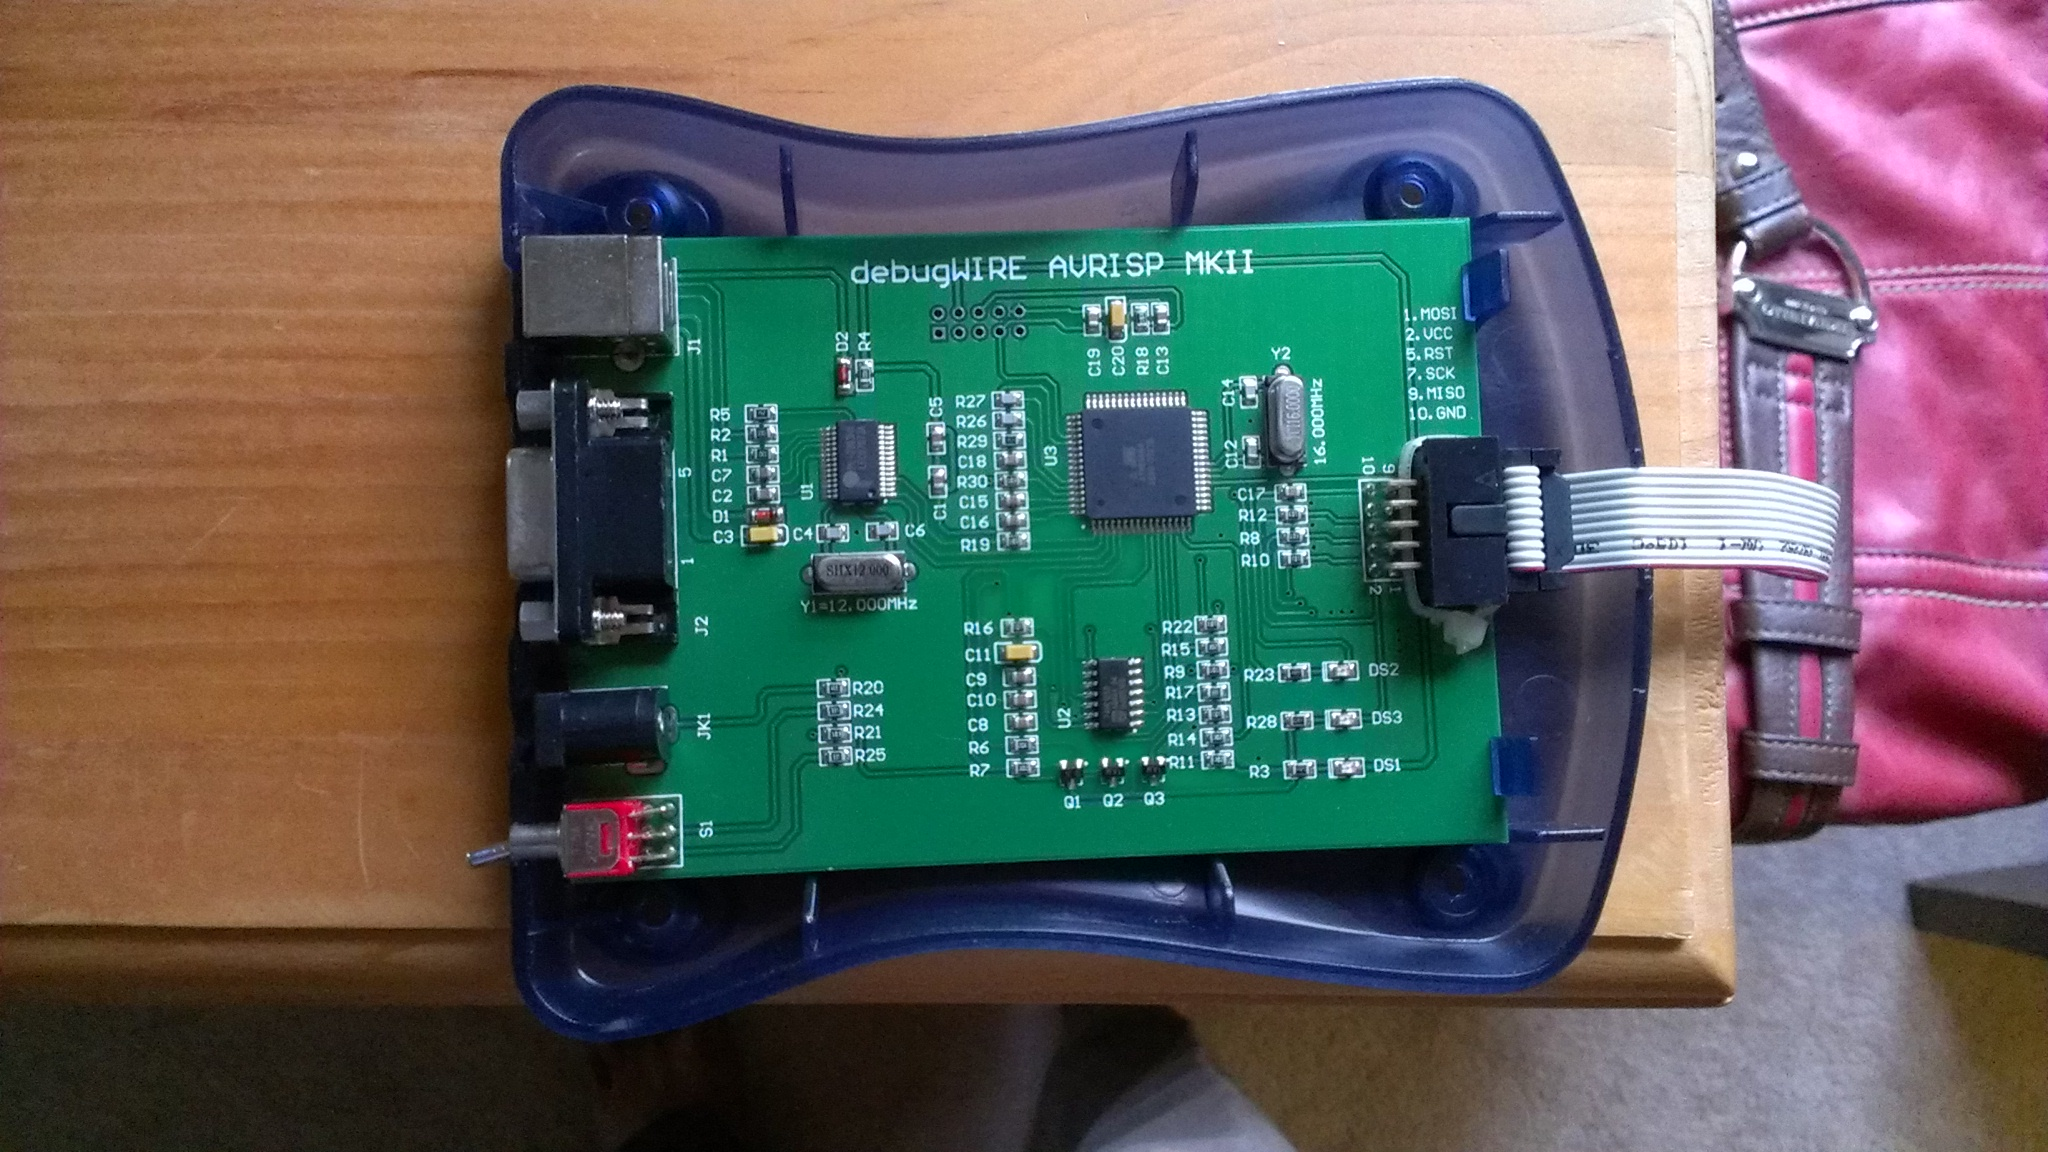 Avr Isp Programmer In Sytem For Atmel Need Help To Resurrect Debugwire Mk2 Freaks Imag1447